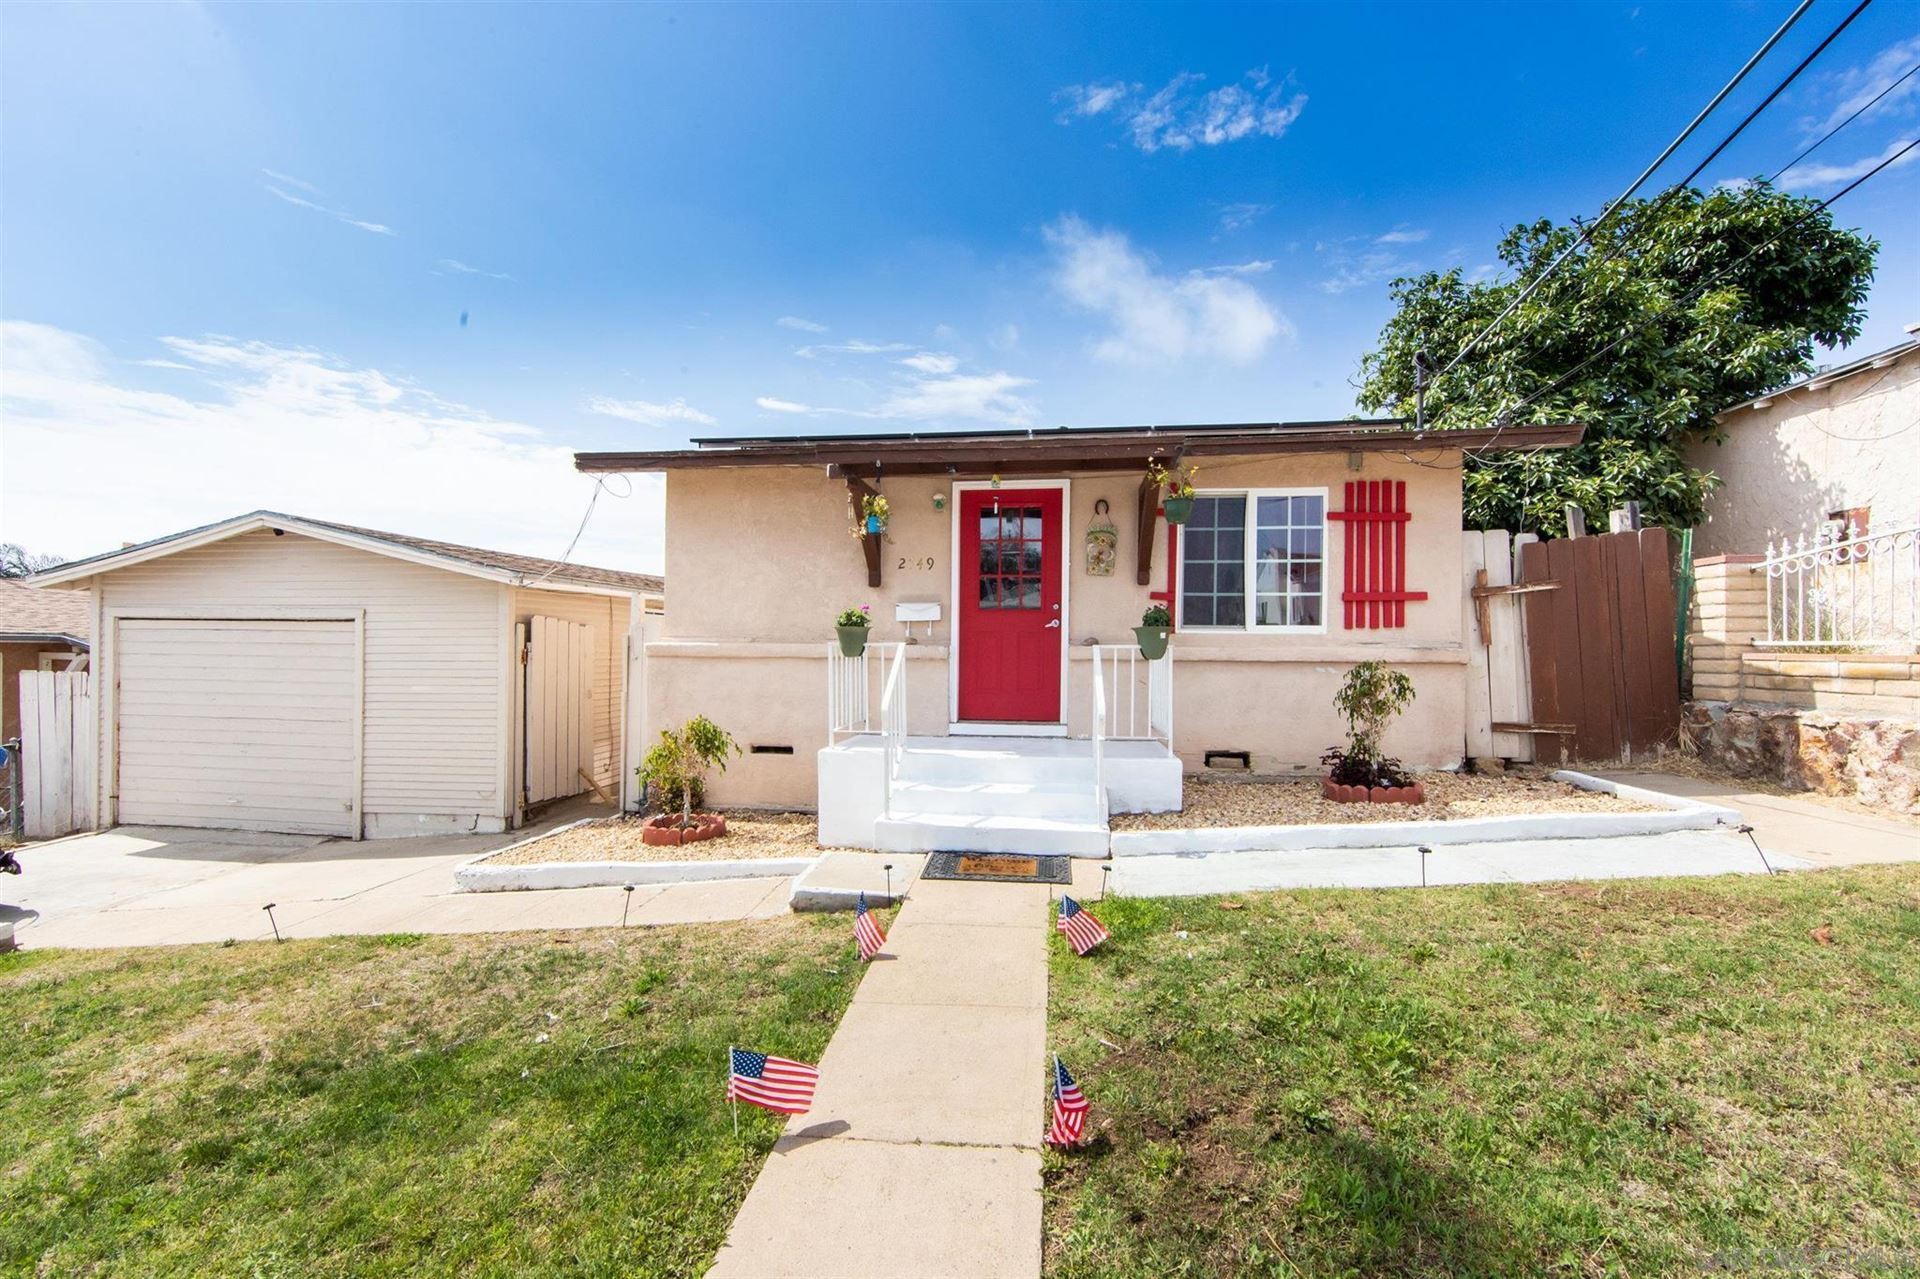 Photo of 2749 Chaffee St, National City, CA 91950 (MLS # 210018667)